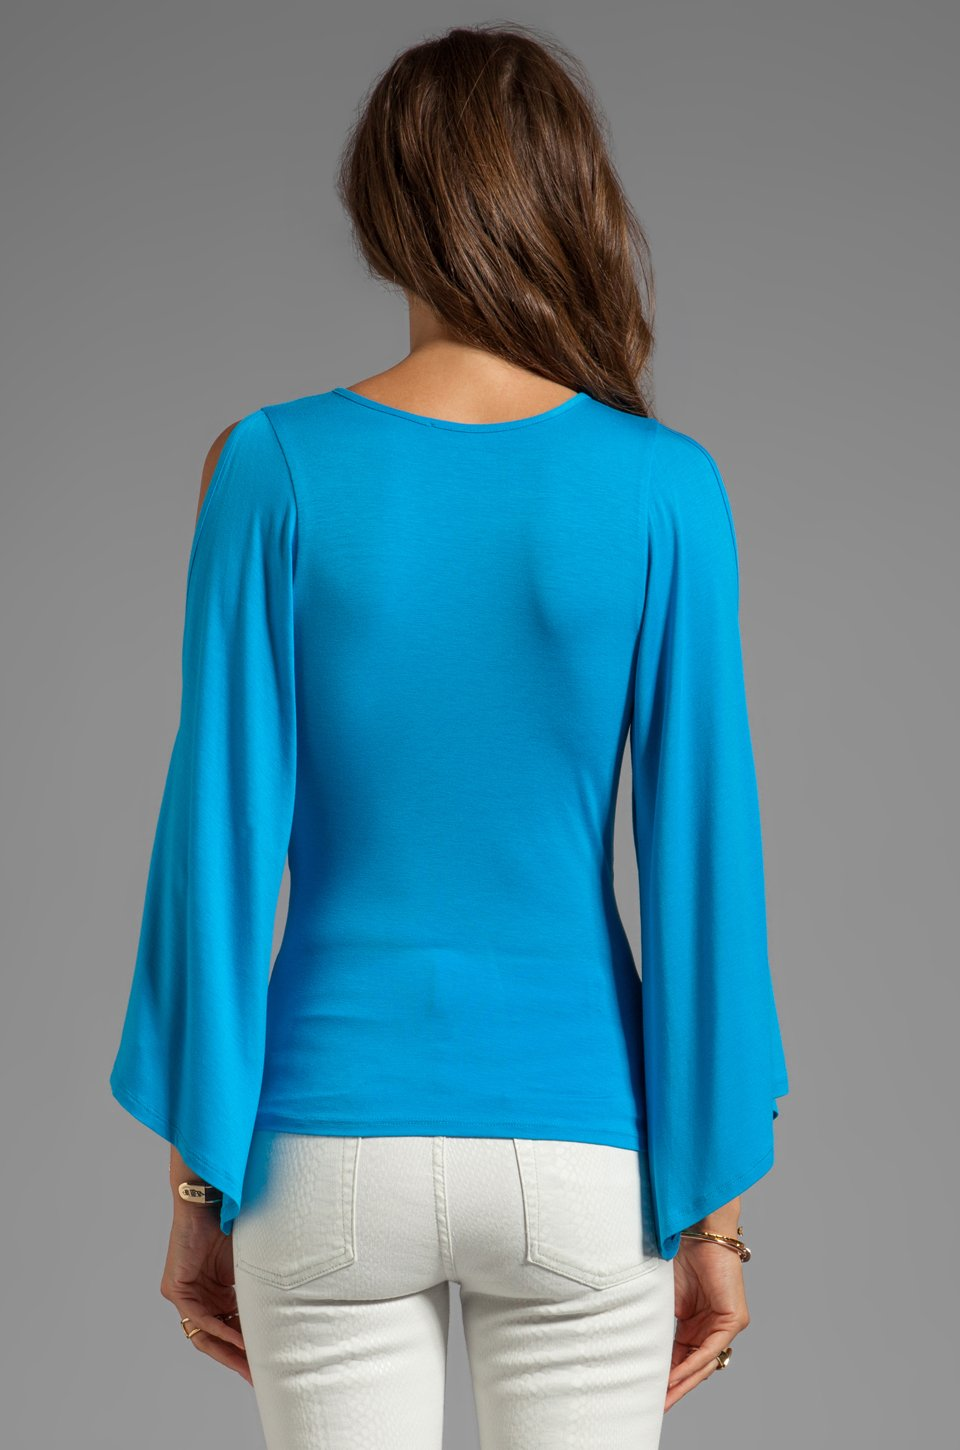 Ocean Blue Open shoulder bell sleeve top